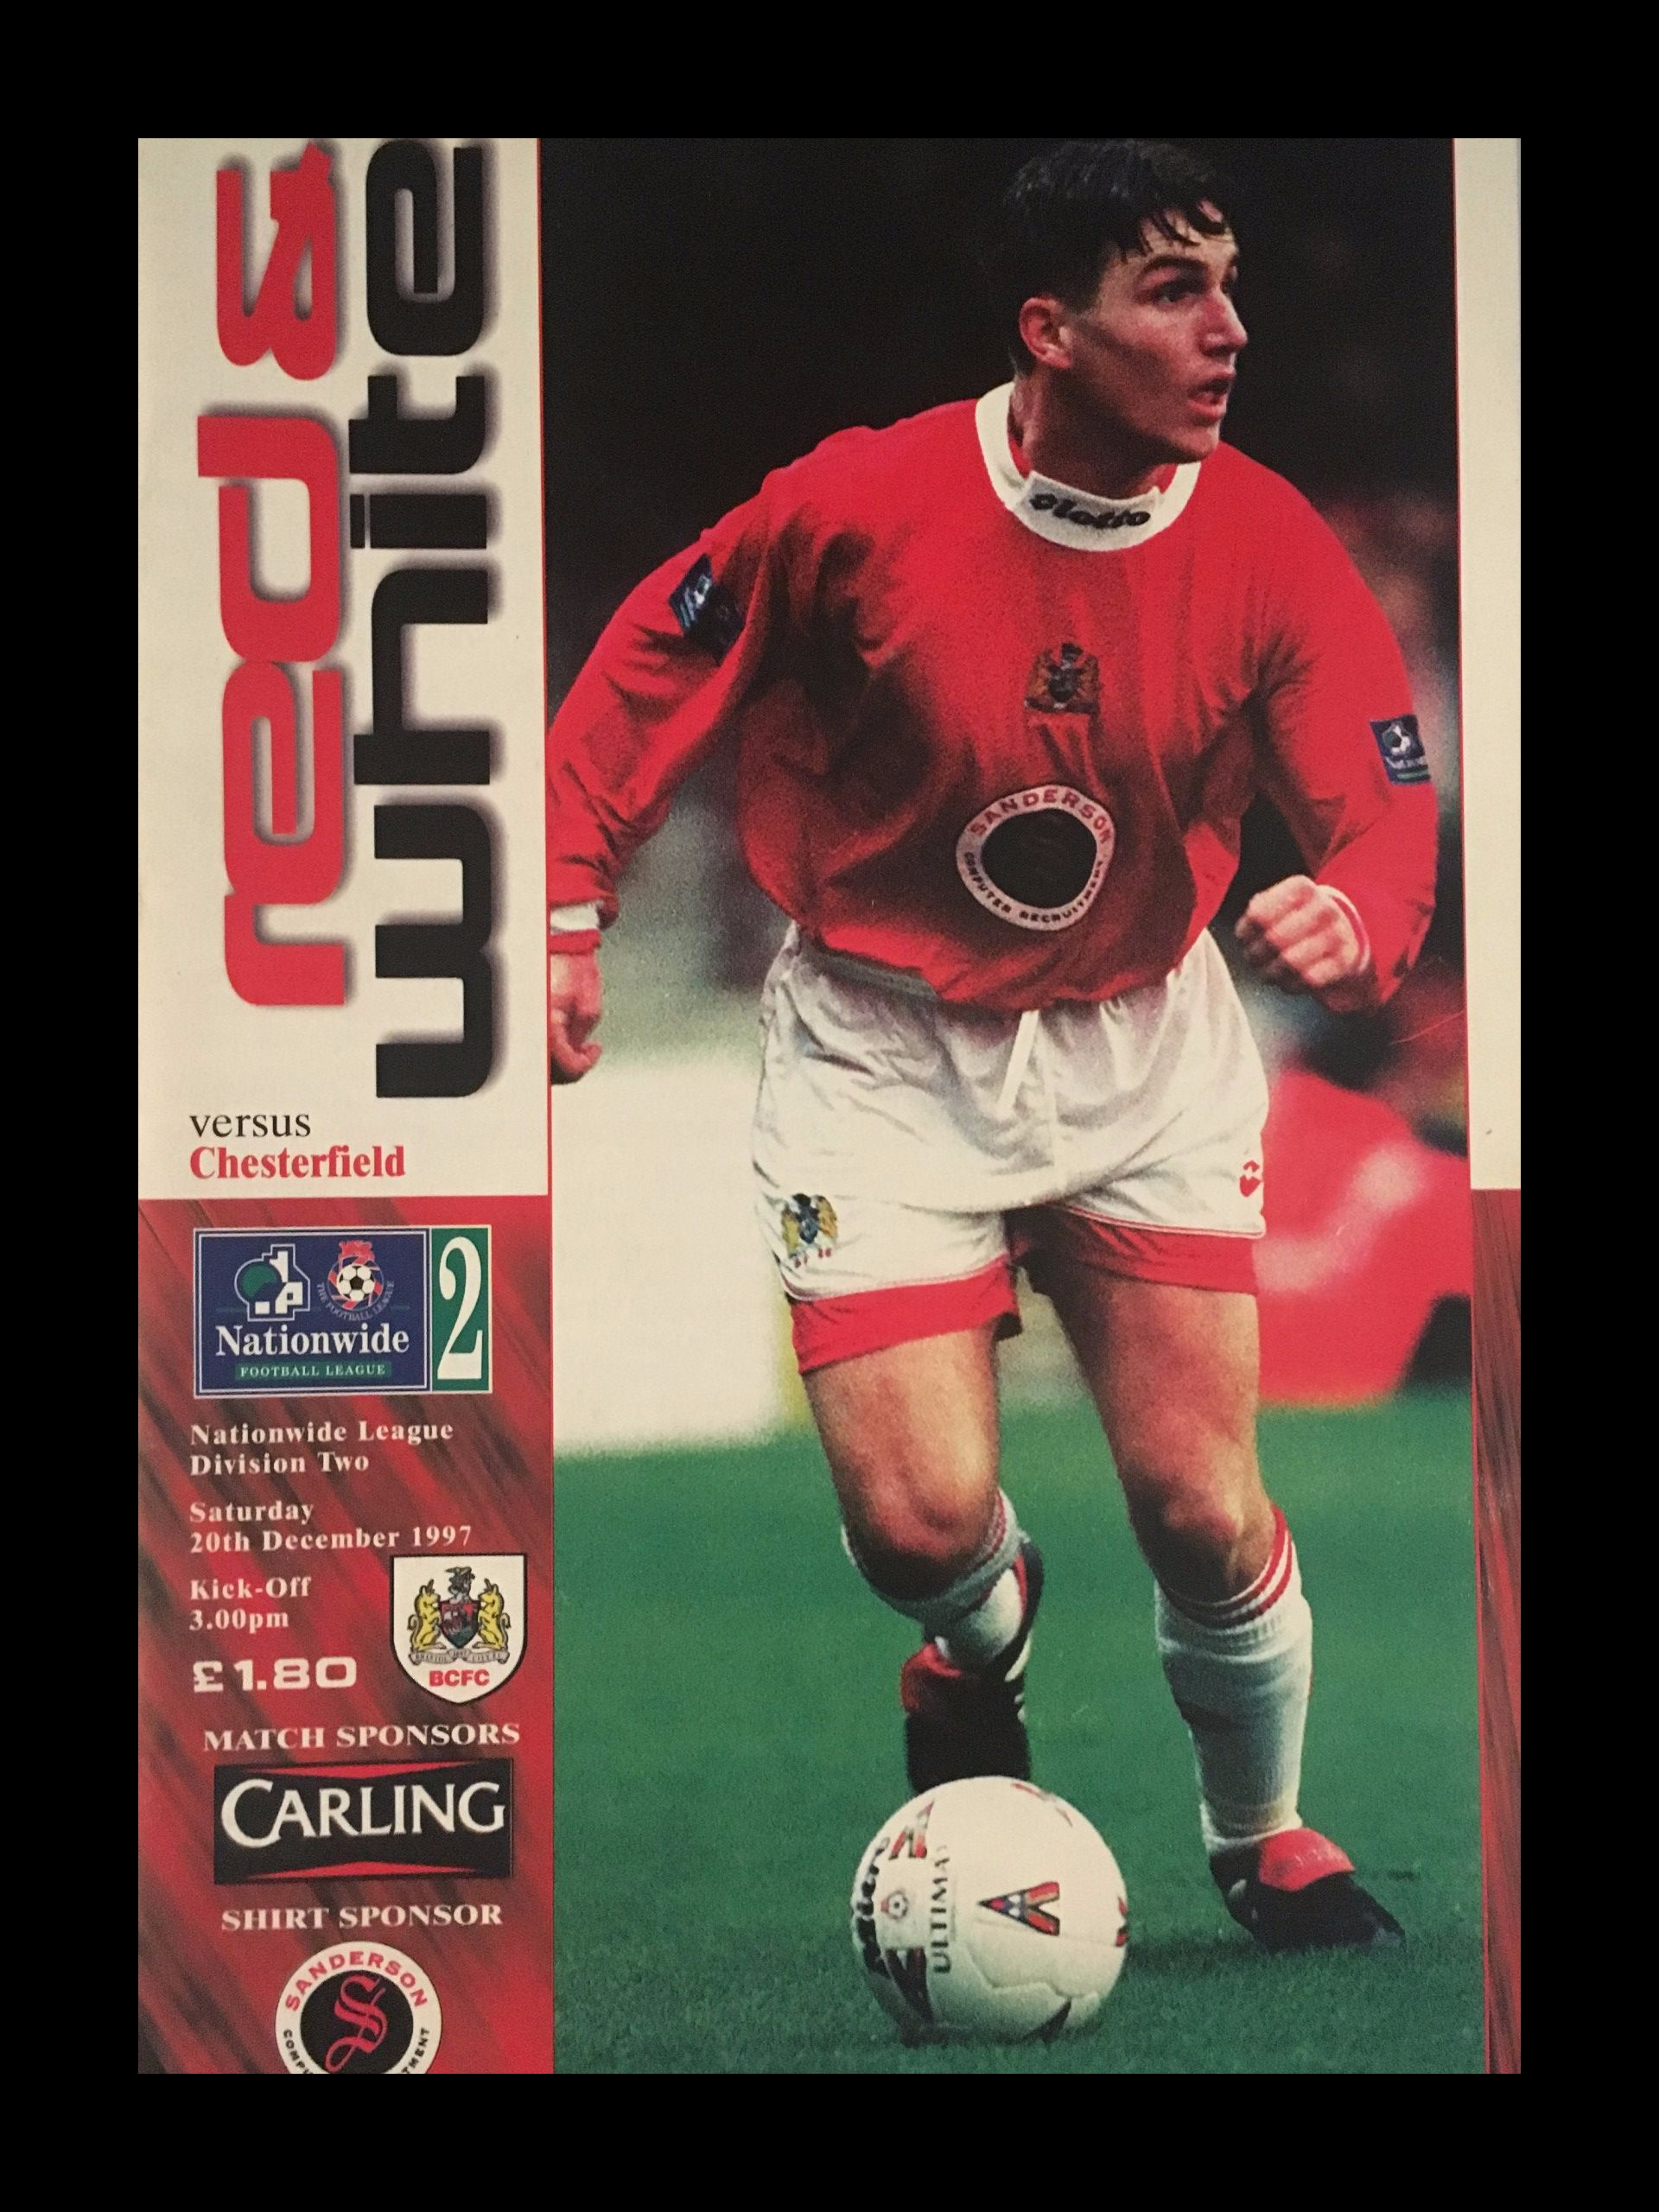 Bristol City v Chesterfield 20-12-1997 Programme